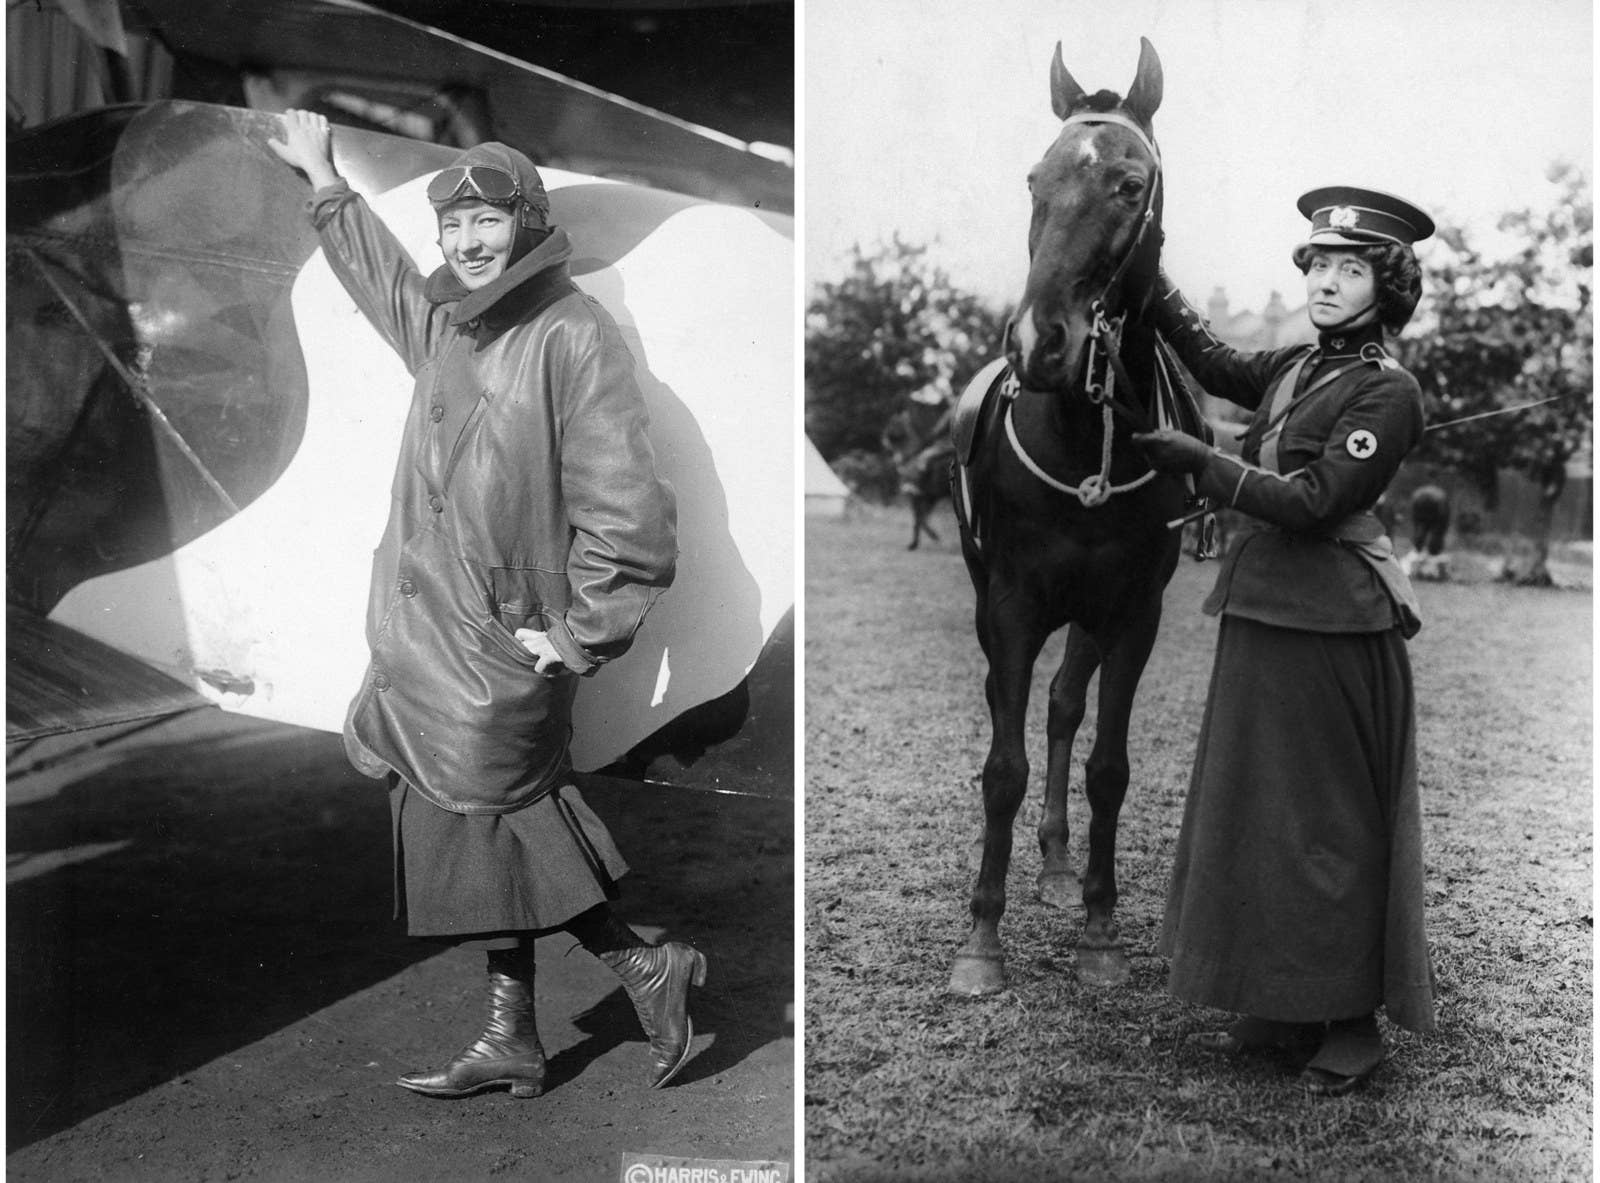 Left: Pilot Marjorie Stinson poses beside her aircraft, wearing a dress underneath a large bomber jacket and a pilot's cap with glasses, 1917. Right: Mabel St Clair Stobart in the field, circa 1913. She founded the Women's Sick and Wounded Convoy Corps, and organized hospitals in Europe during World War I.